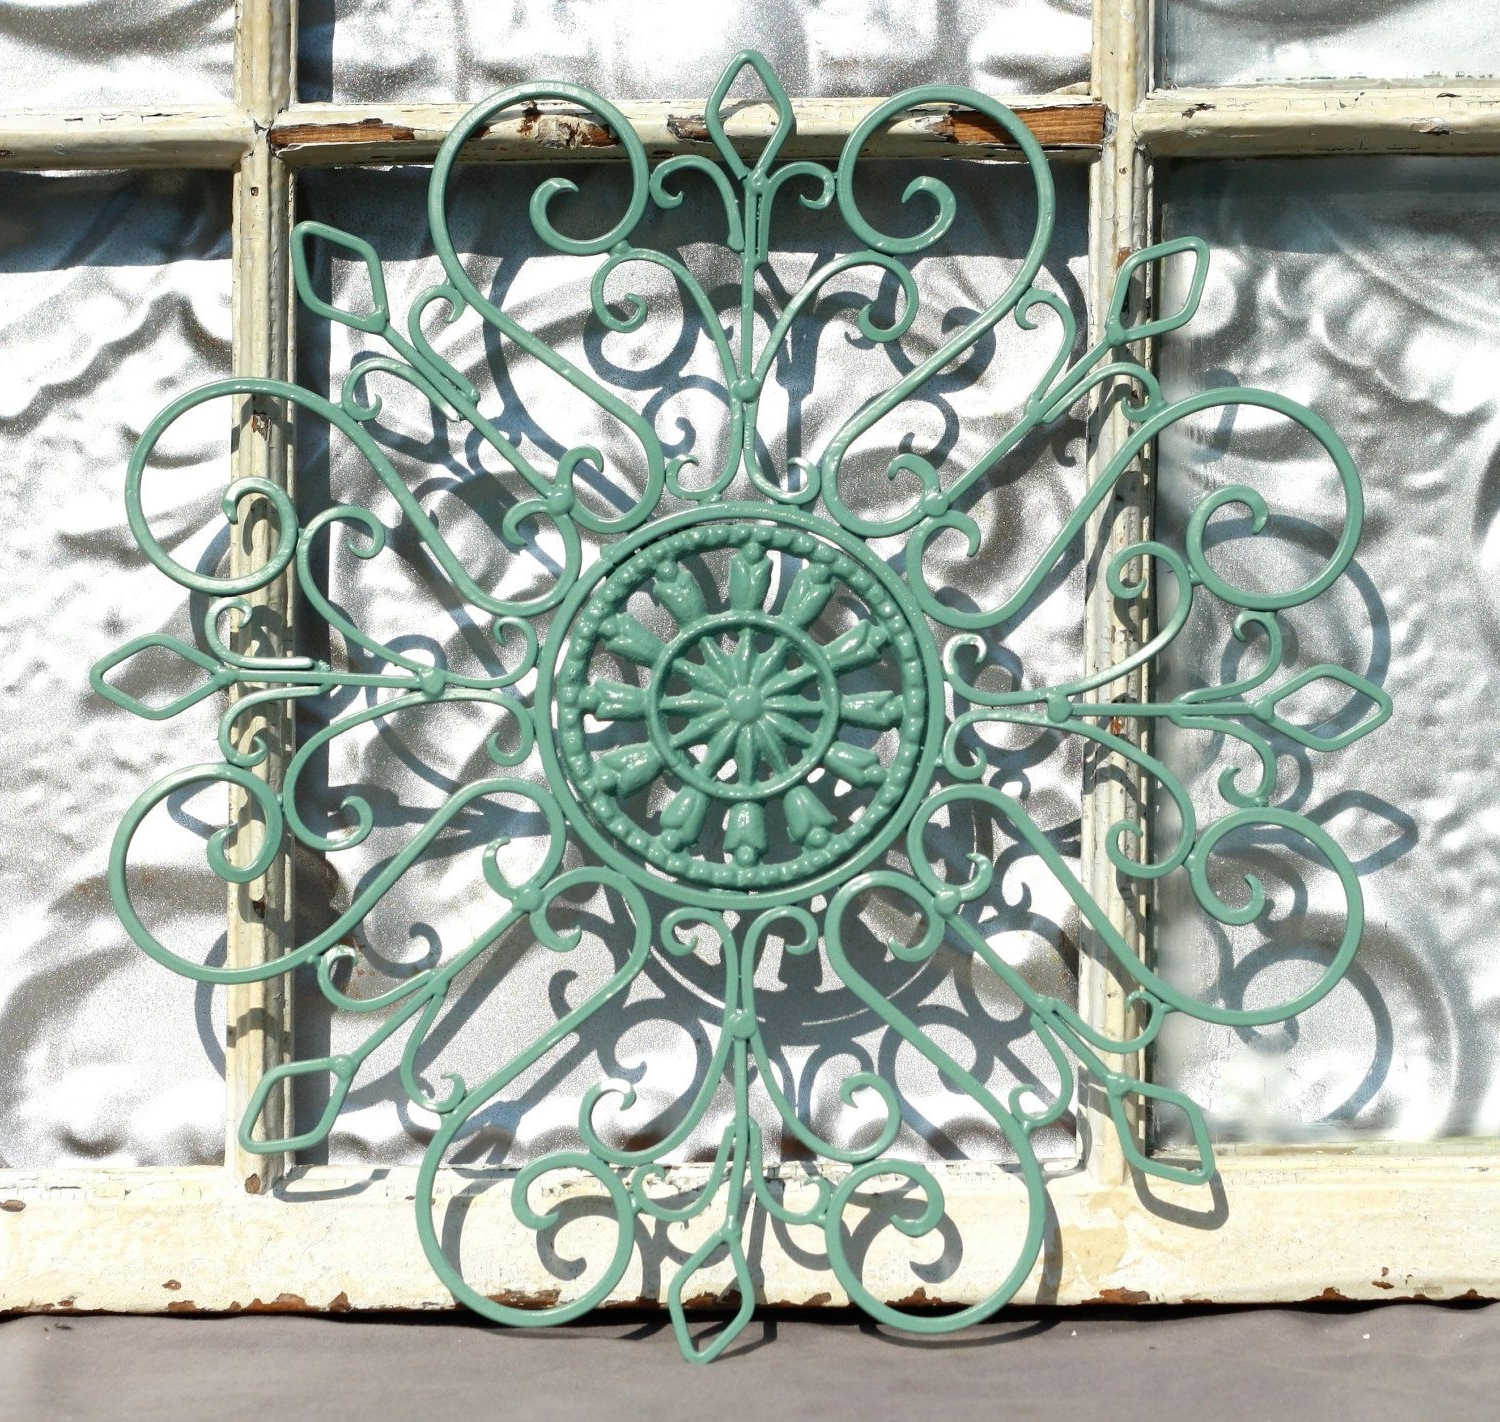 Most Current Wrought Iron Wall Decor/ Metal Wall Hanging/ Indoor/ Outdoor Metal With Regard To Wrought Iron Wall Art (View 13 of 15)